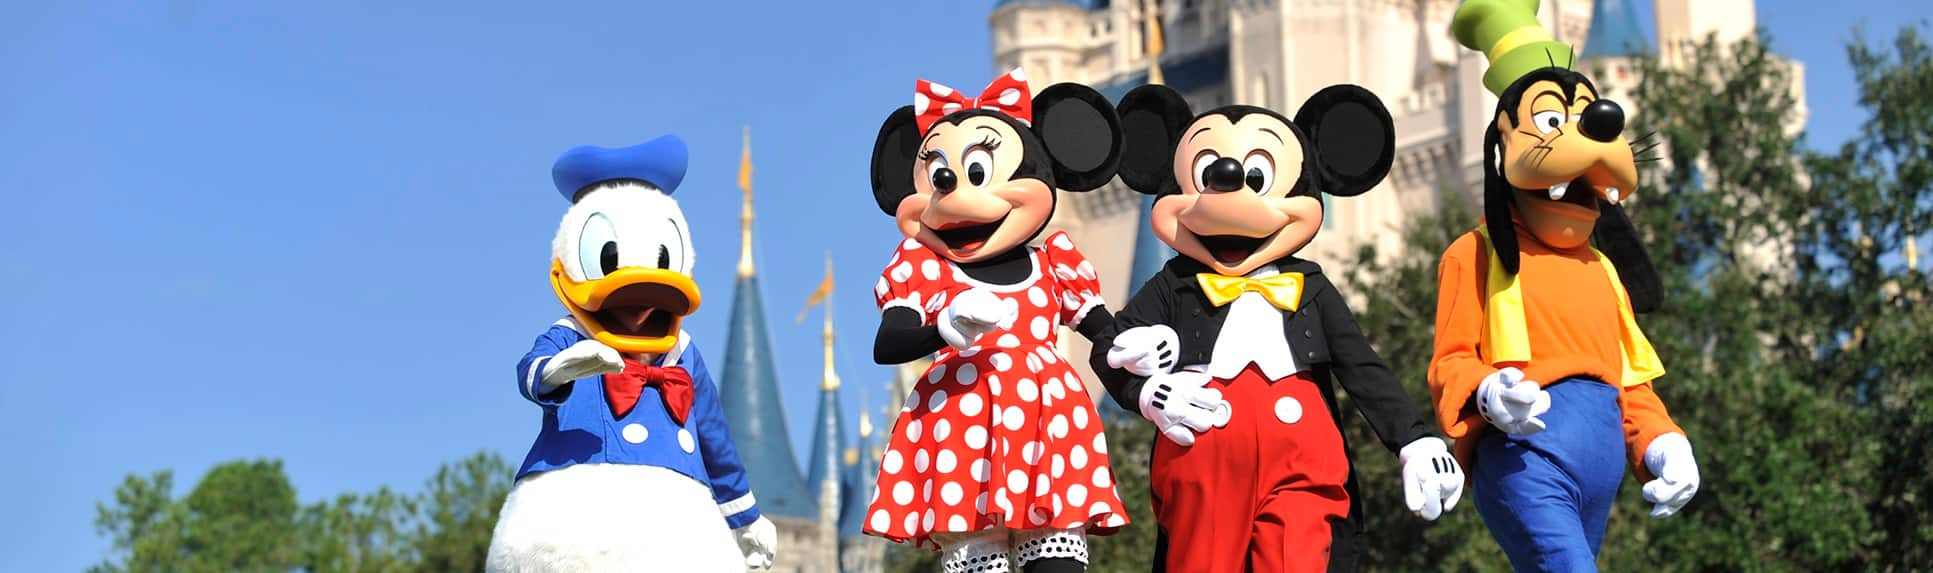 Characters Donald Duck, Minnie Mouse, Mickey Mouse and Goody near Cinderella Castle at Magic Kingdom park